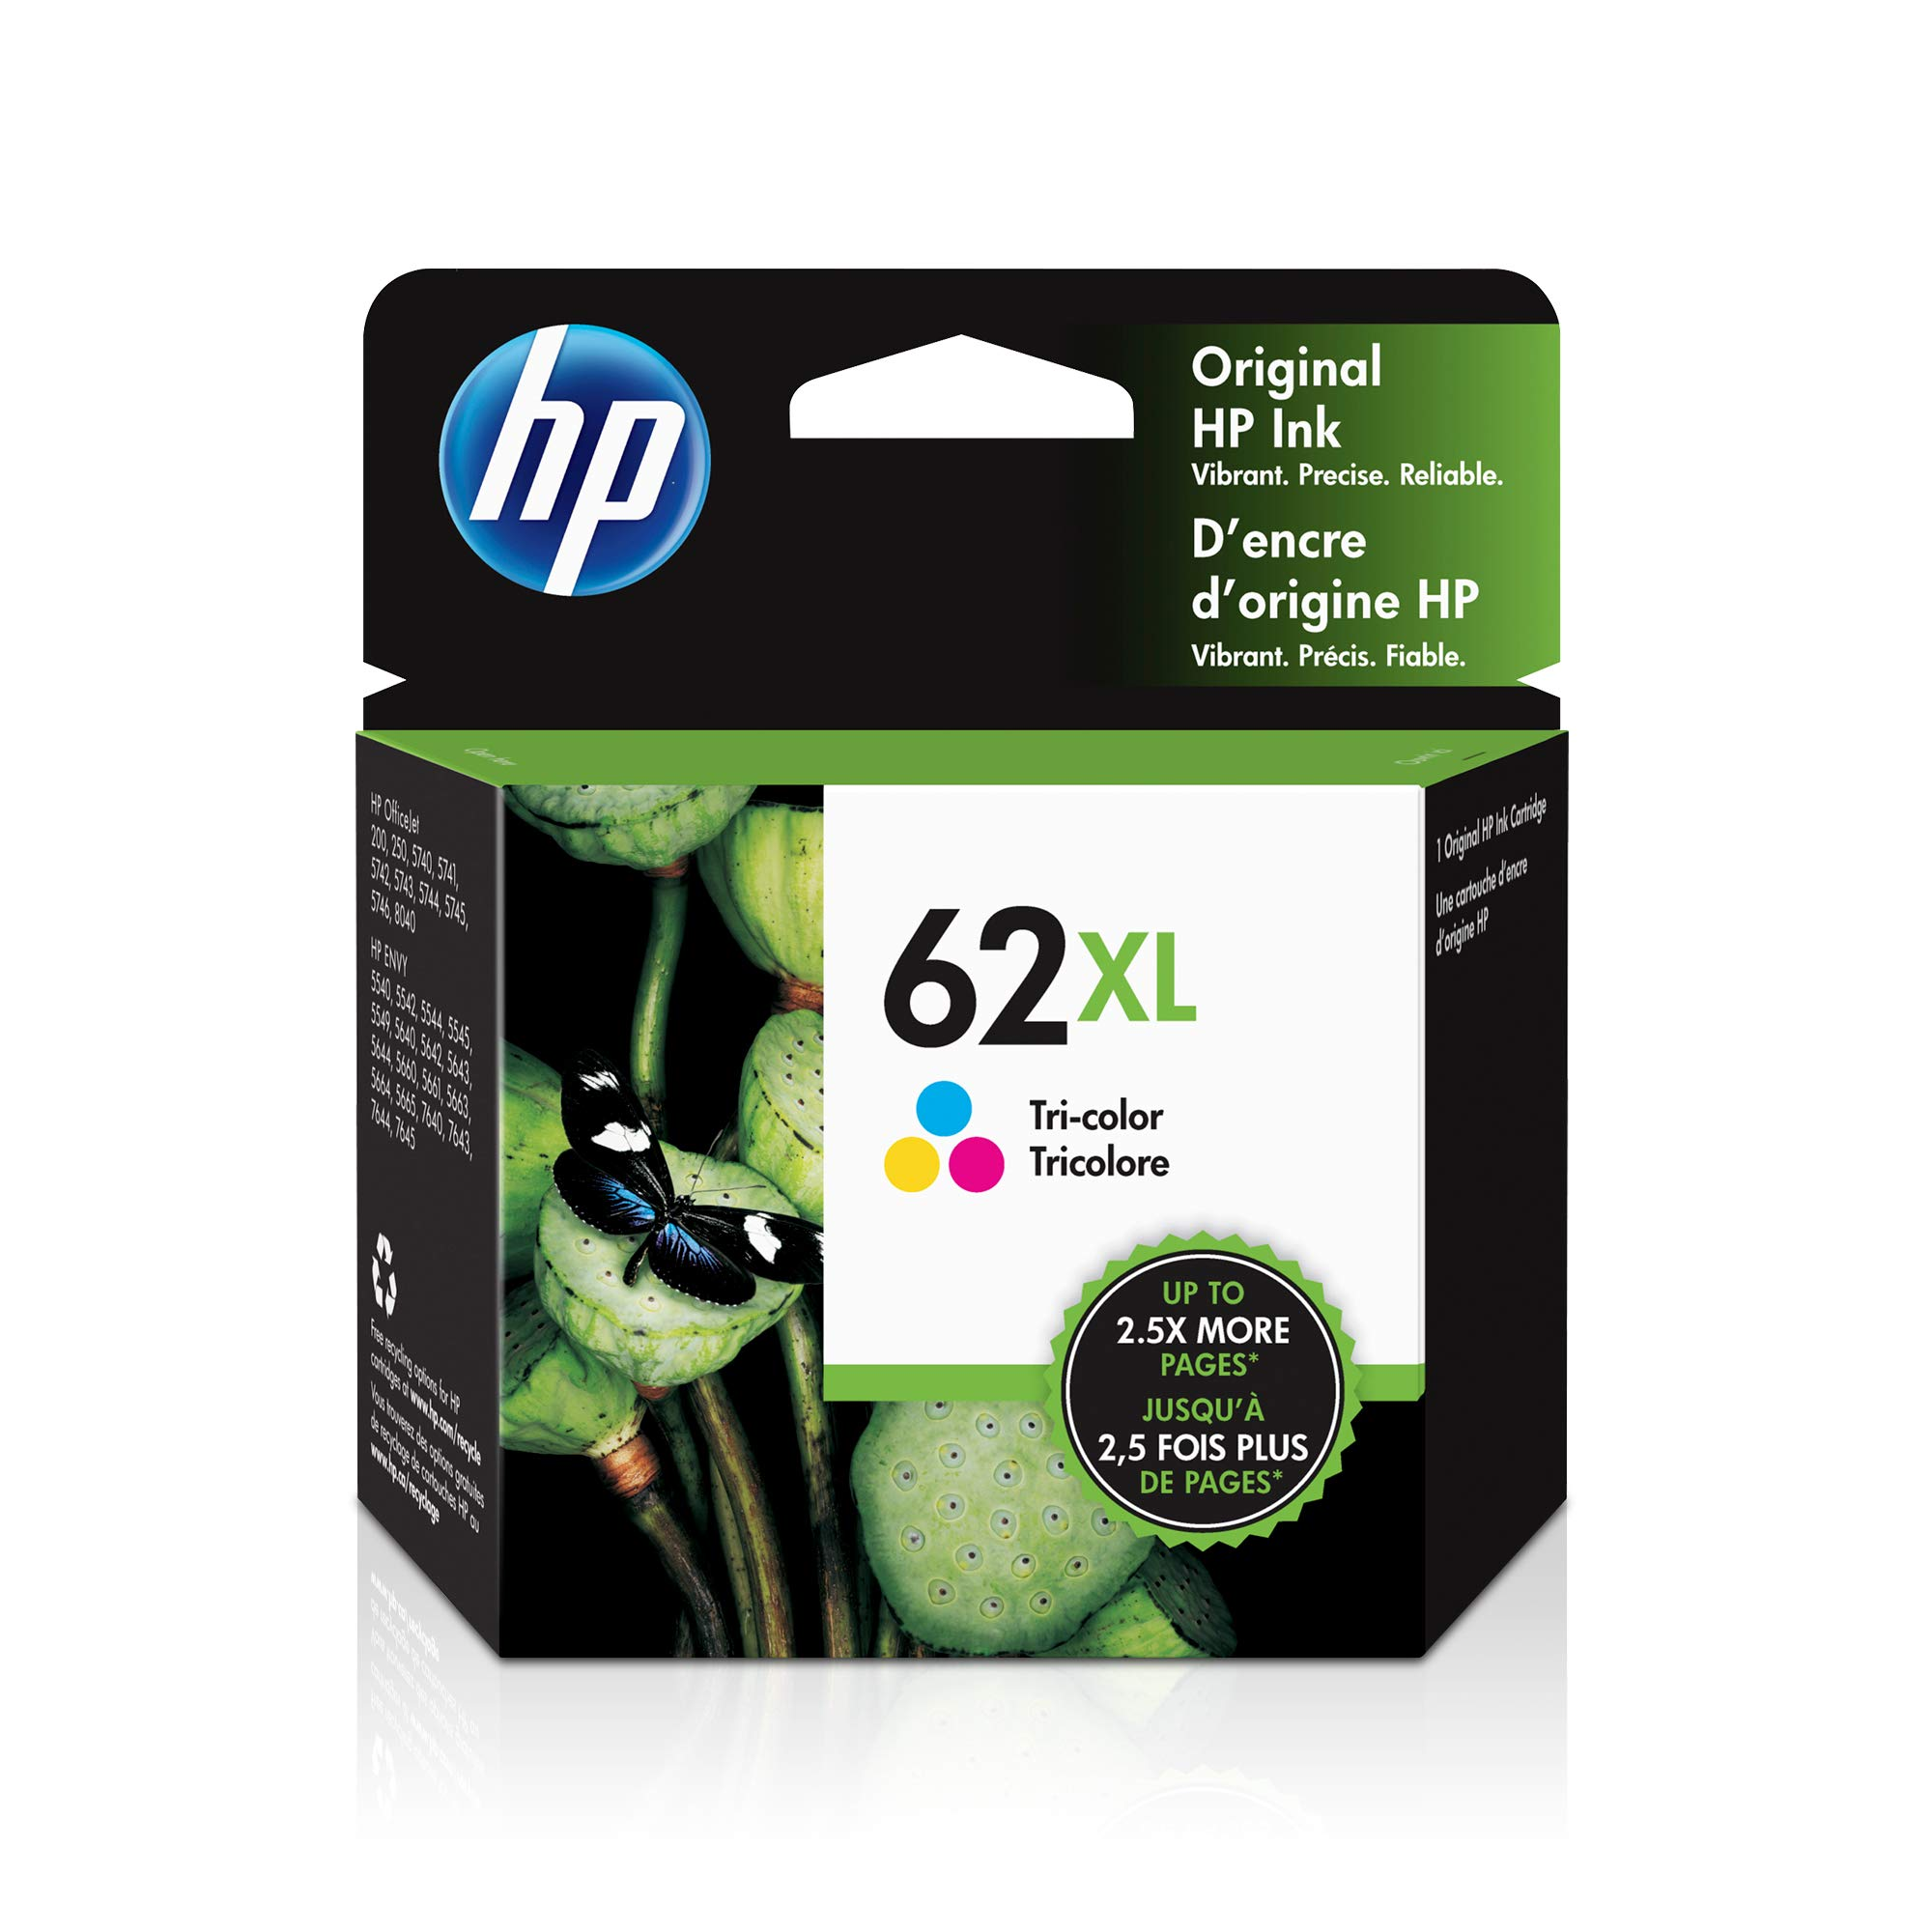 HP 62XL | Ink Cartridge | Works with HP ENVY 5500 Series, 5600 Series, 7600 Series, HP Officejet 200, 250, 258, 5700 Series, 8040 | Tri-color | C2P07AN